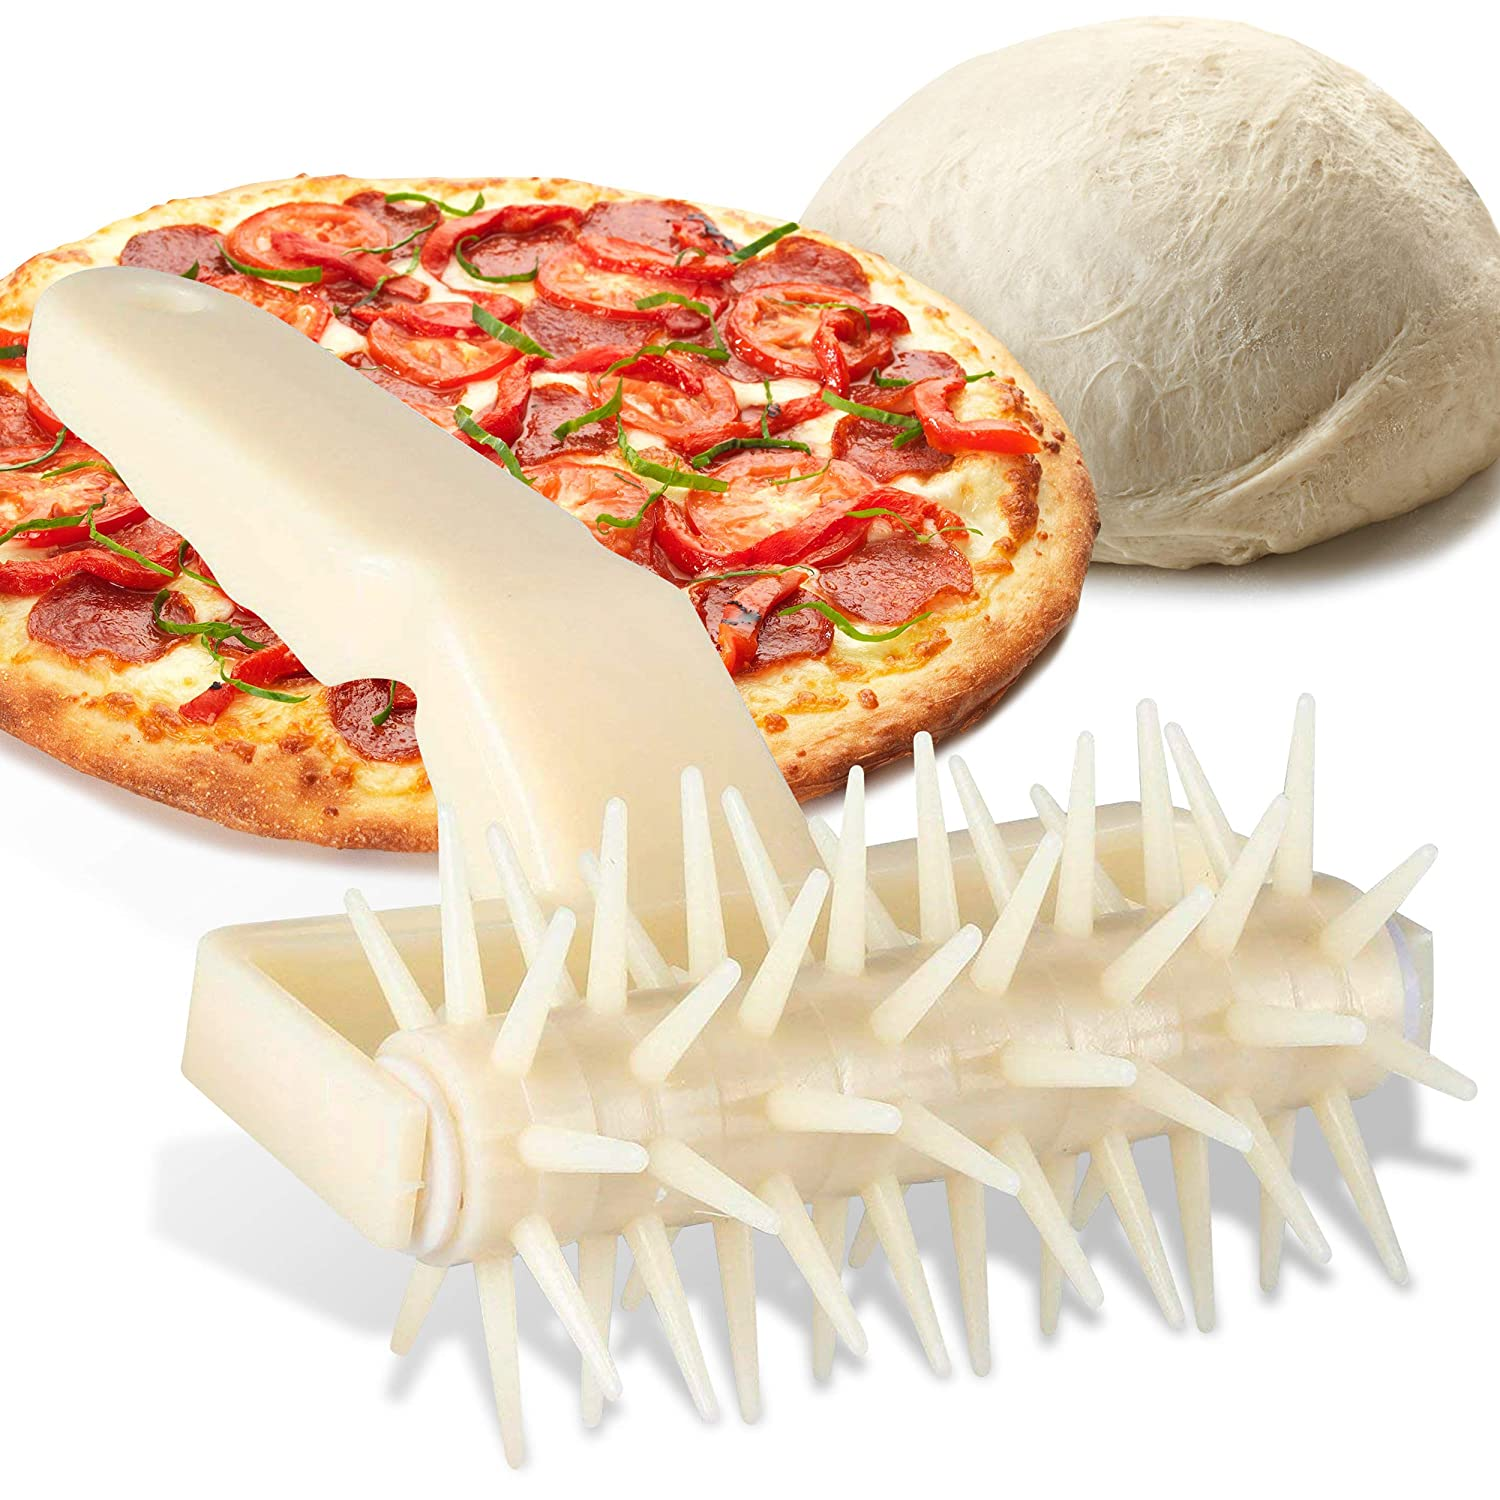 Orblue Dough Docker, Helps Cook Thin Crust Pizza Uniformly & Prevents Dough From Blistering (1-pack)